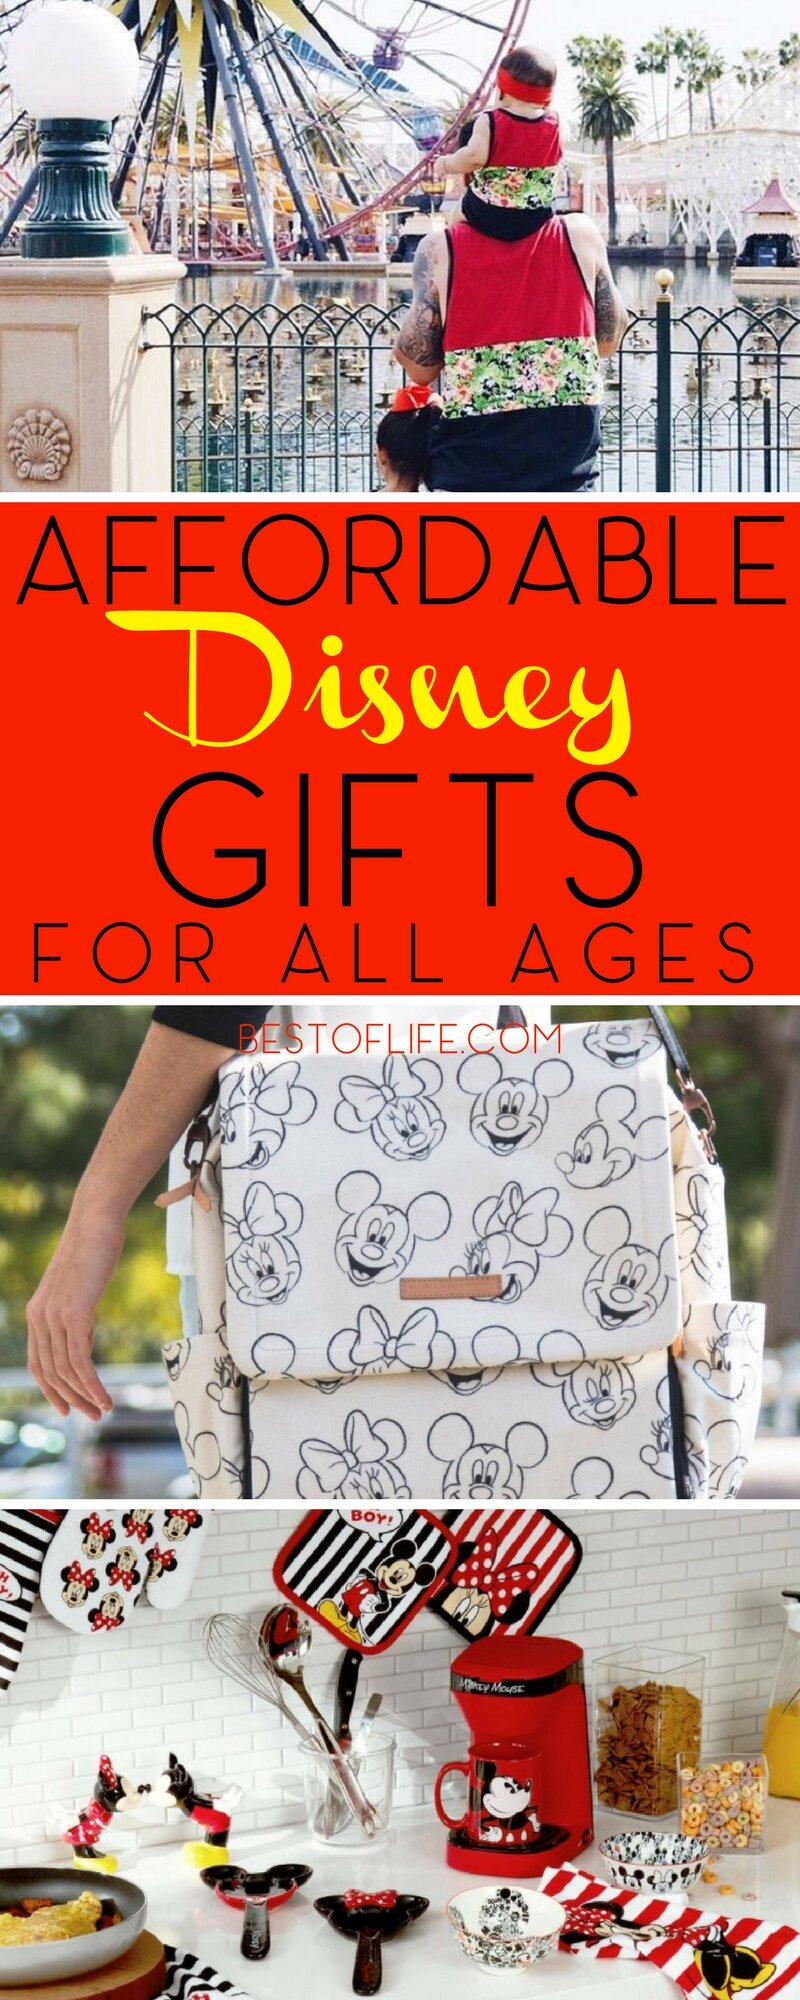 The love of Disney spans across the ages! Give these Disney gifts for all ages to the Disney fan in your life. Disney Gifts for Adults | Disney Gifts for Teens | Disney Gifts for your Boyfriend | Best Gift Ideas | Holiday Disney Gift Ideas